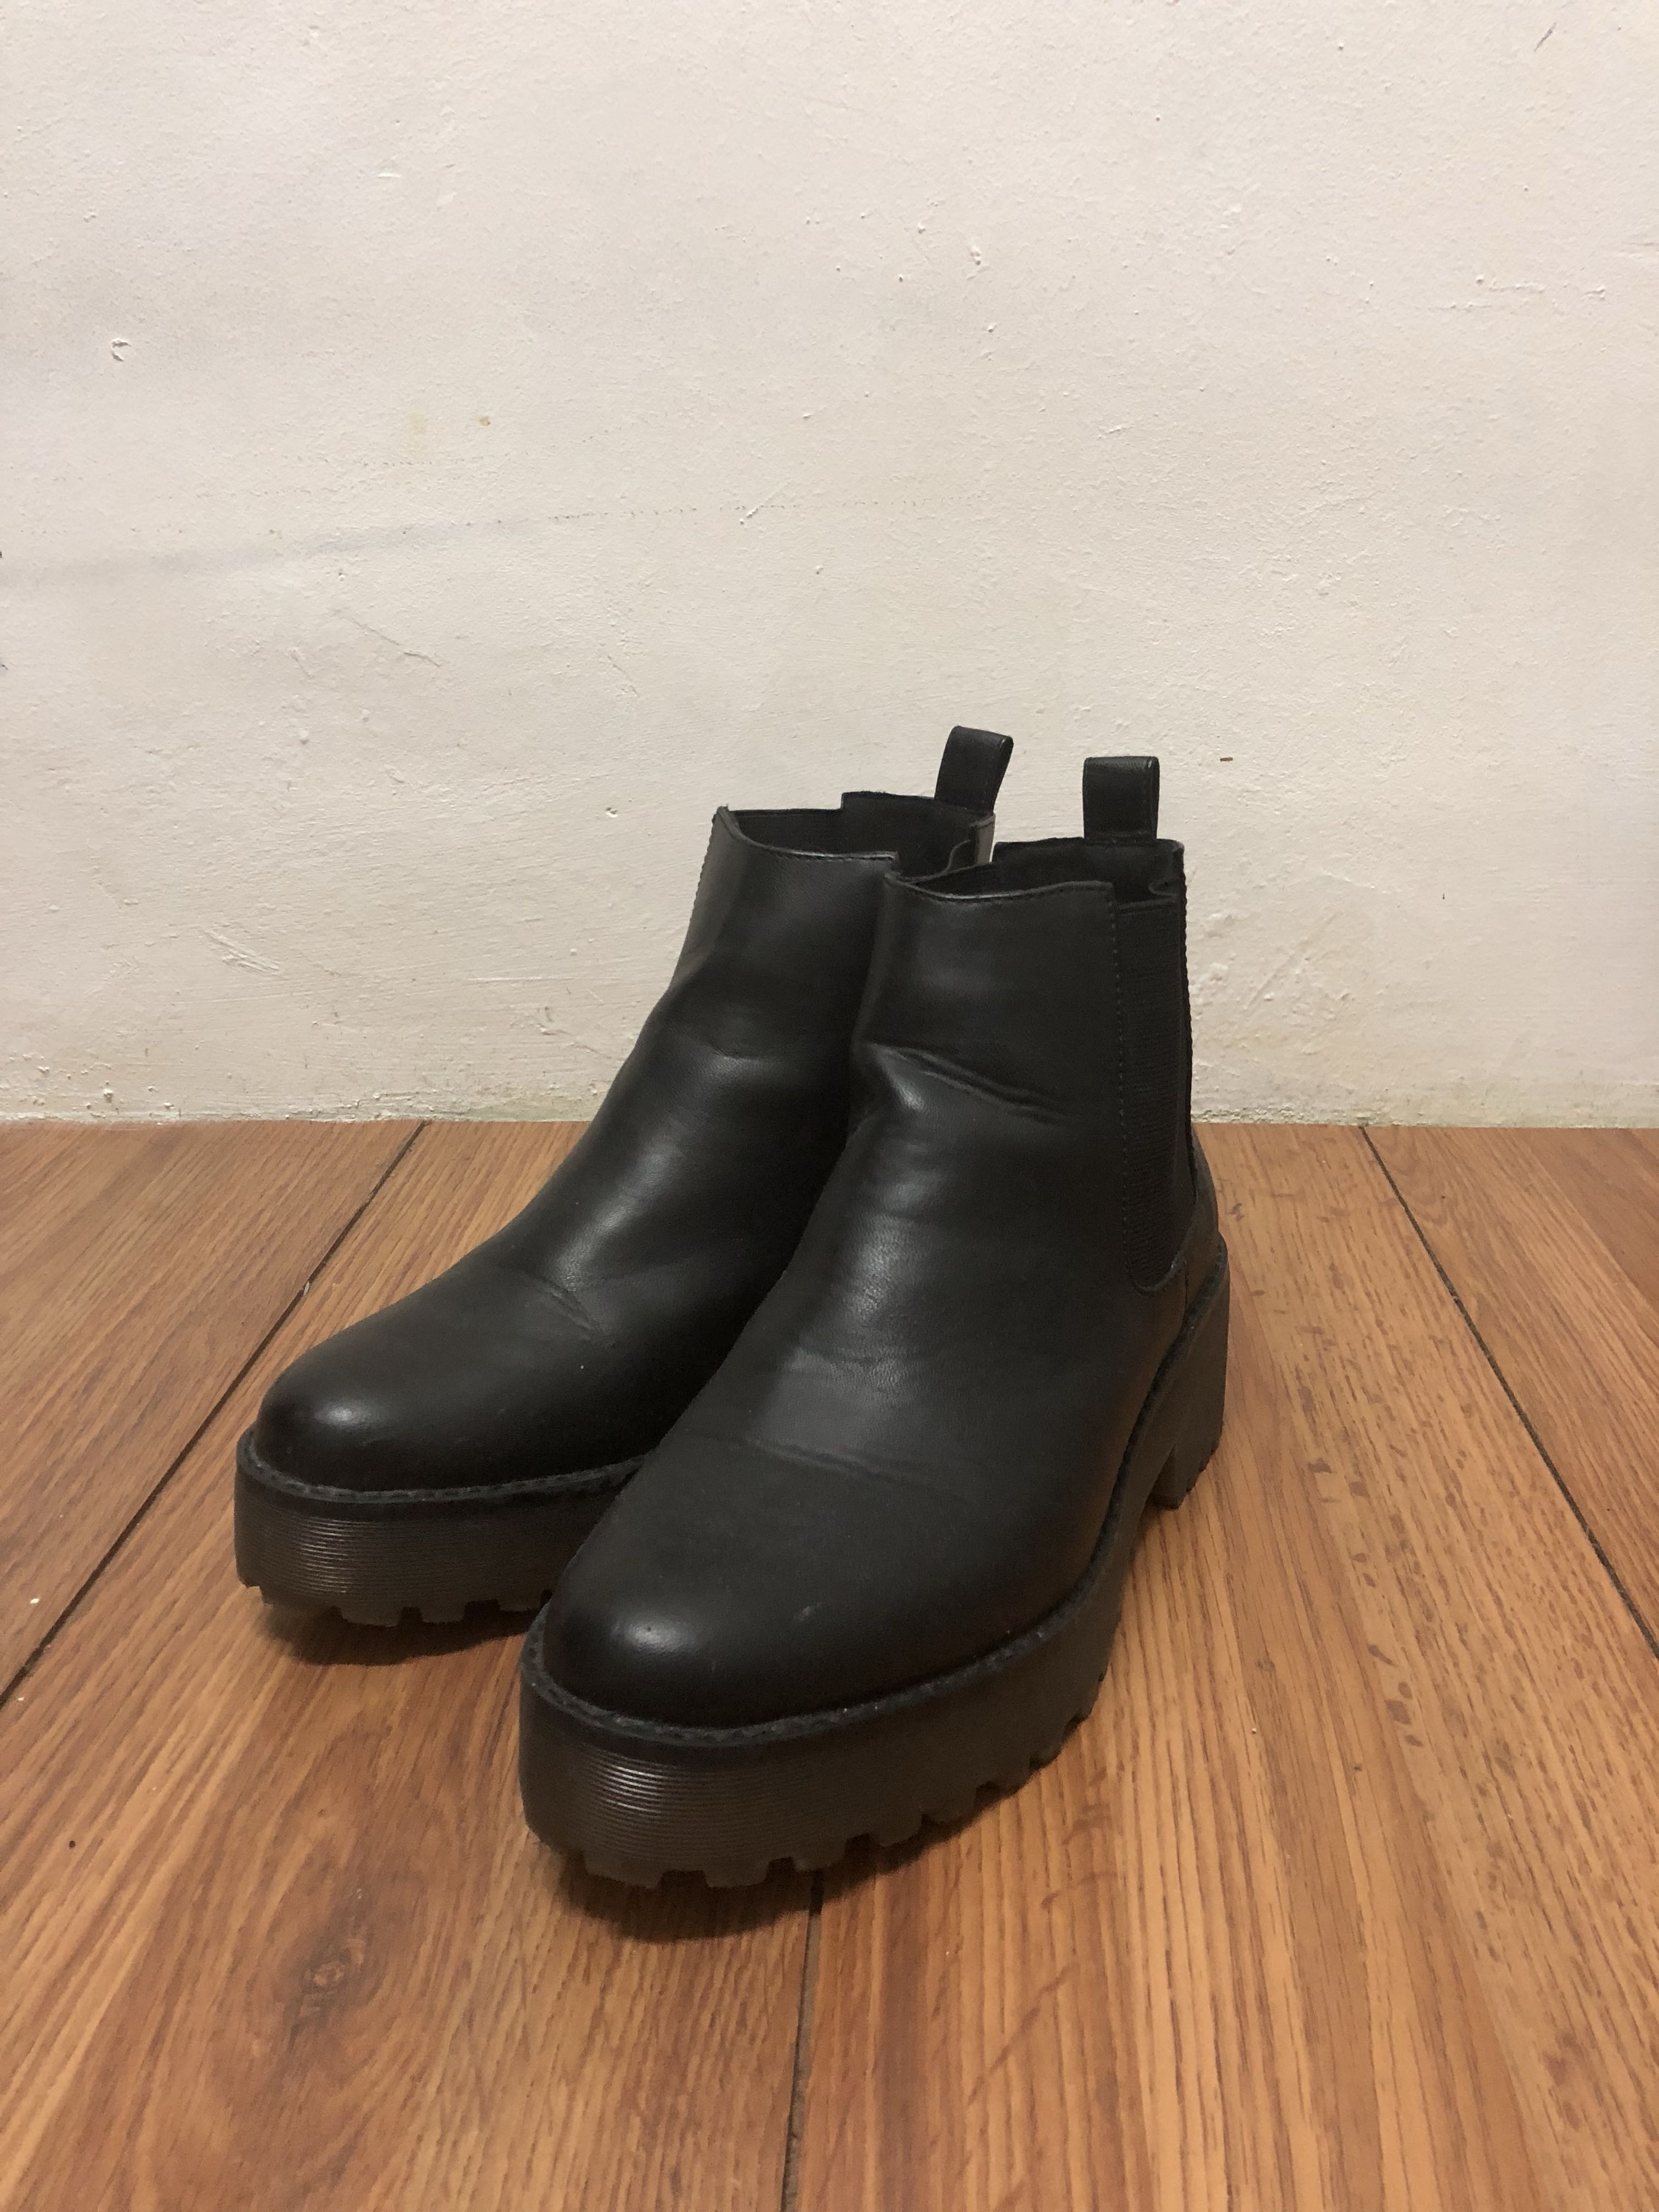 5e585a60839aa H&M Chelsea Boots, Men's Fashion, Footwear, Boots on Carousell